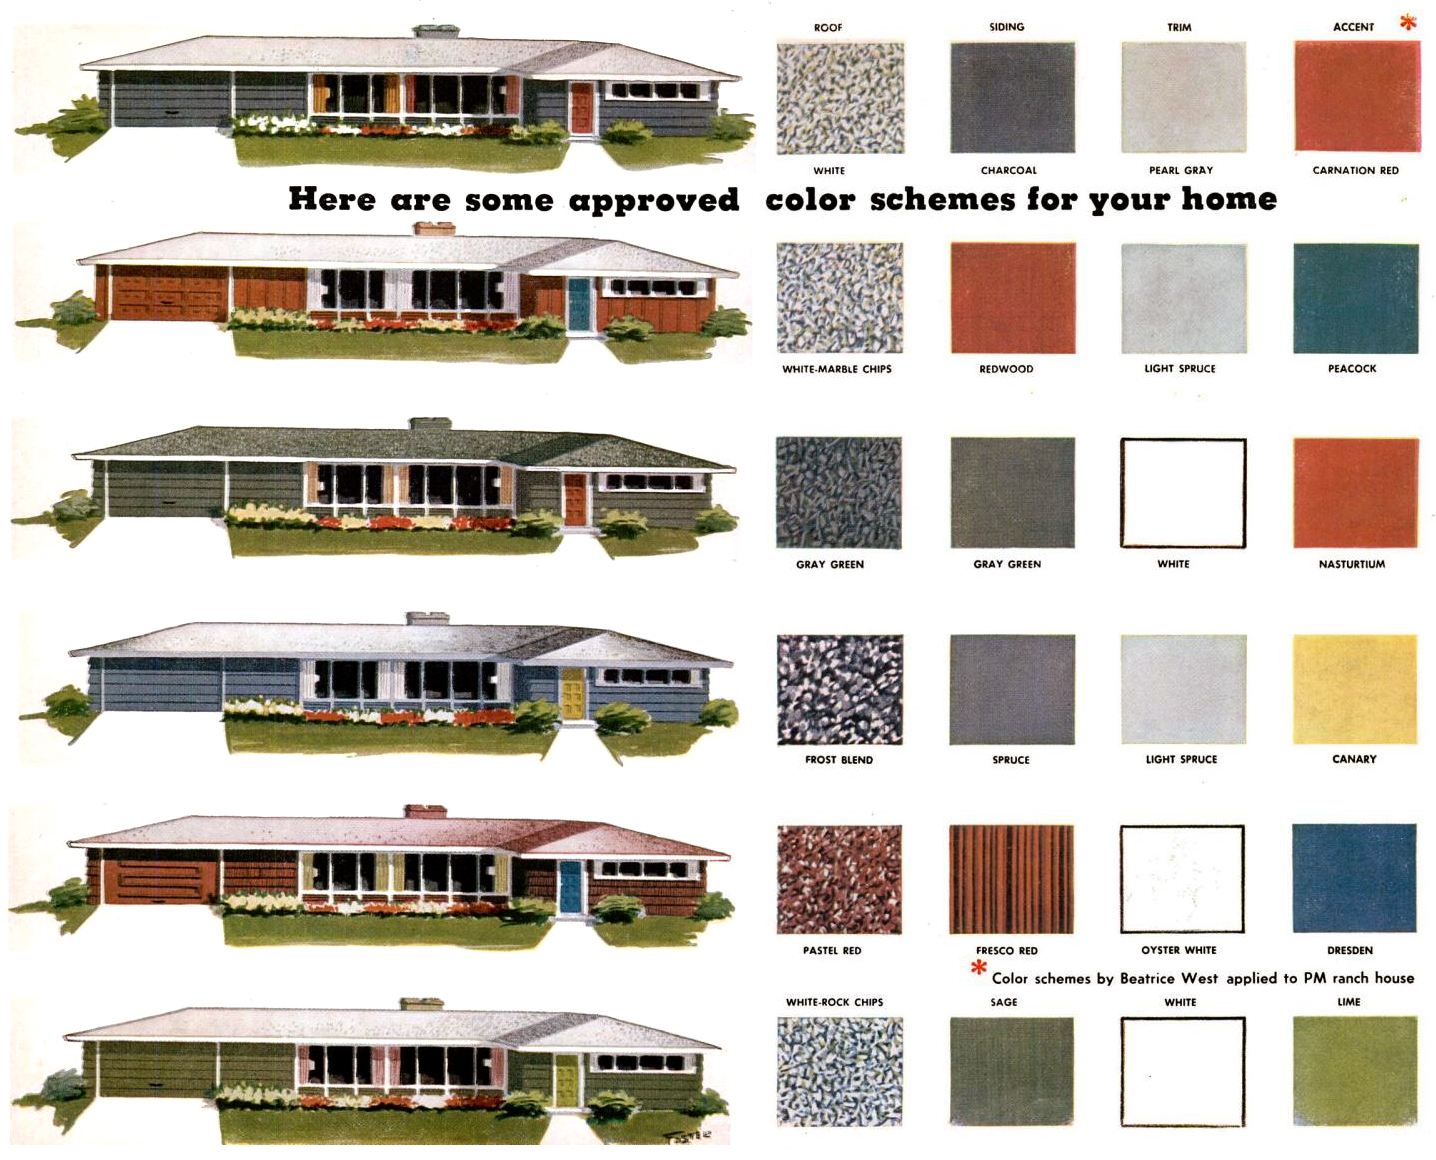 Mad for mid century june 2012 for What color roof should i get for my house